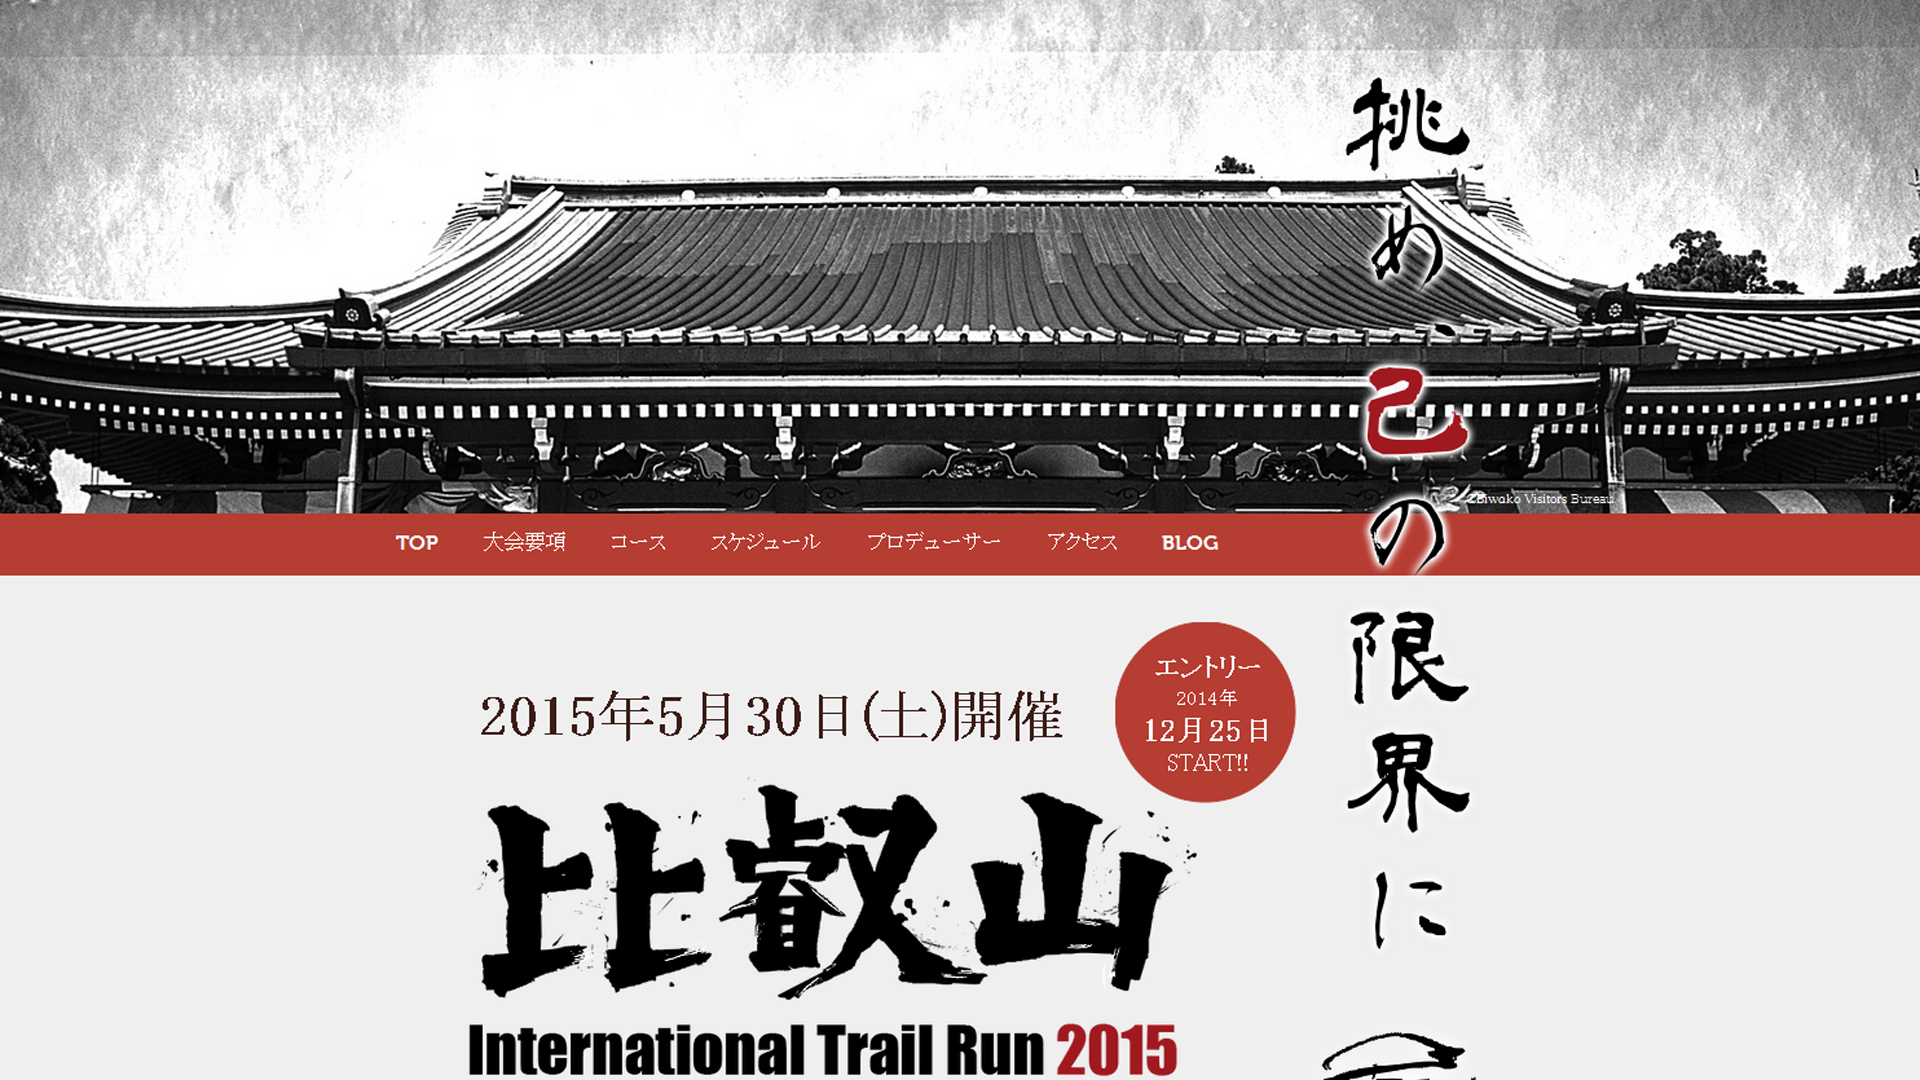 比叡山 International Trail Run 2015 50Km